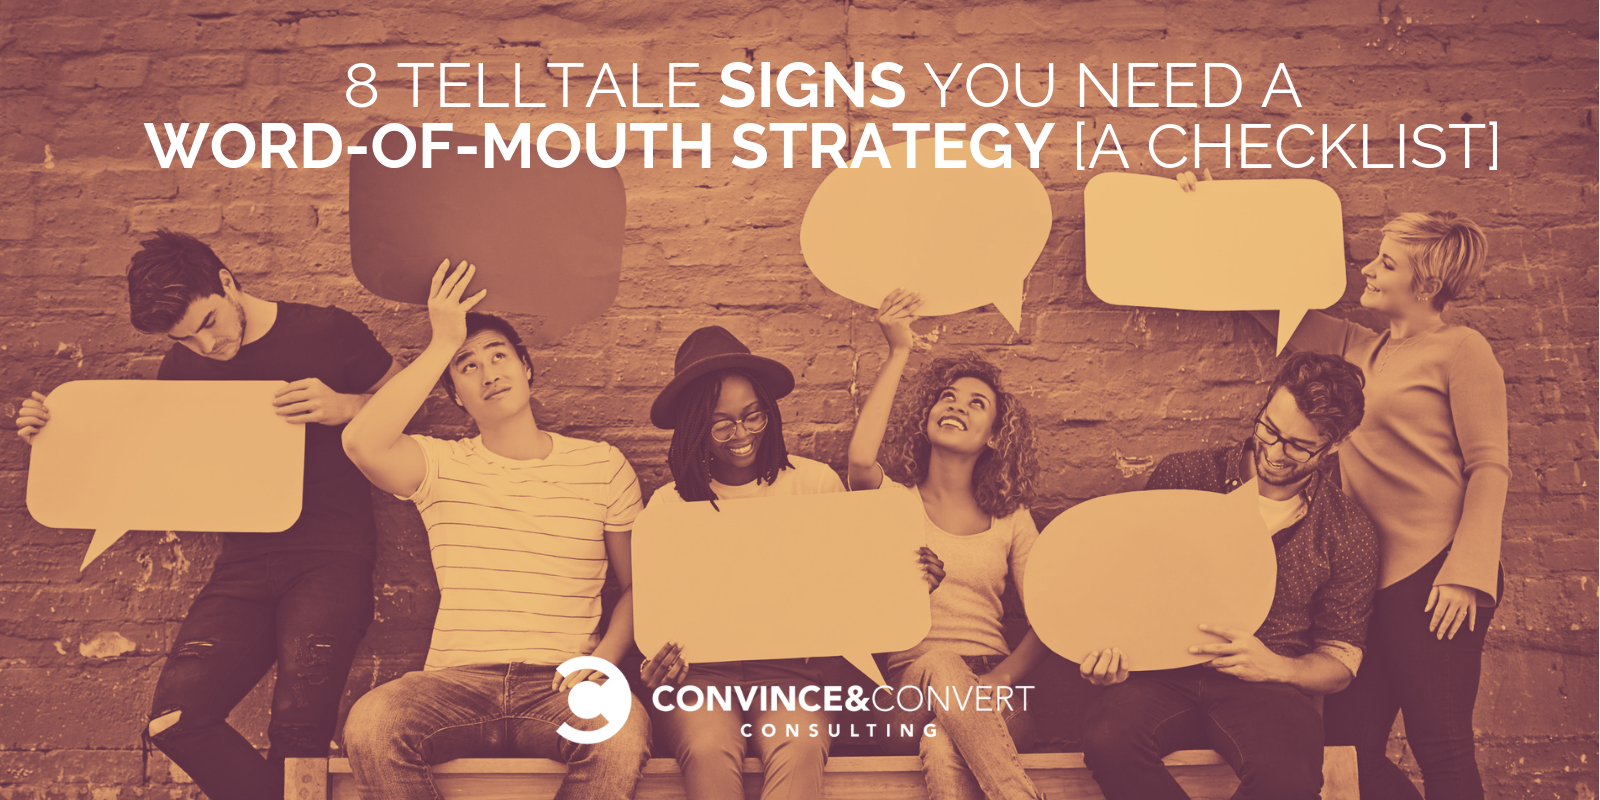 8 Telltale Signs You Need a Word of Mouth Strategy